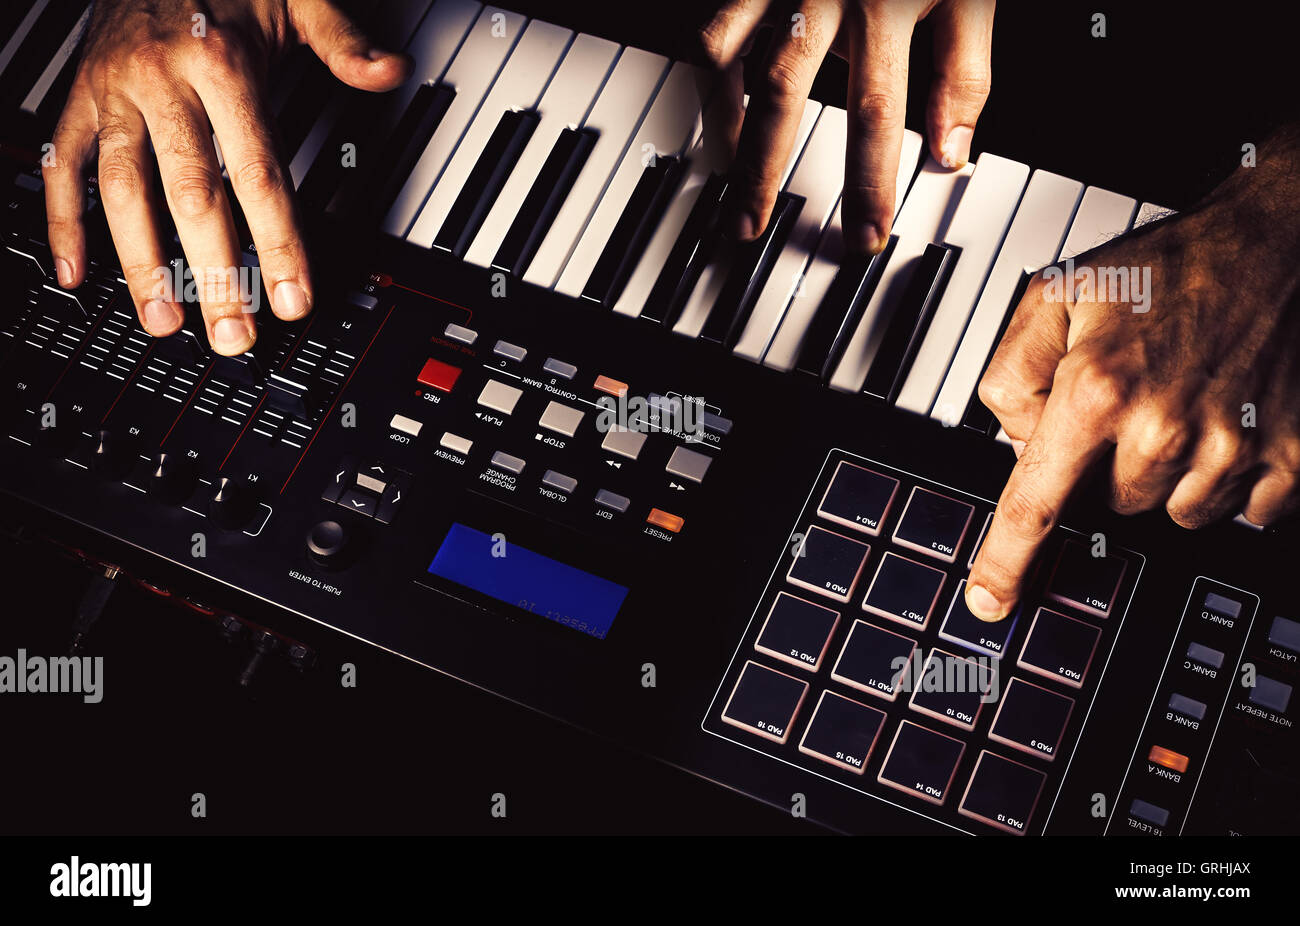 Details of a modern midi keyboard with male hands playing on it. - Stock Image